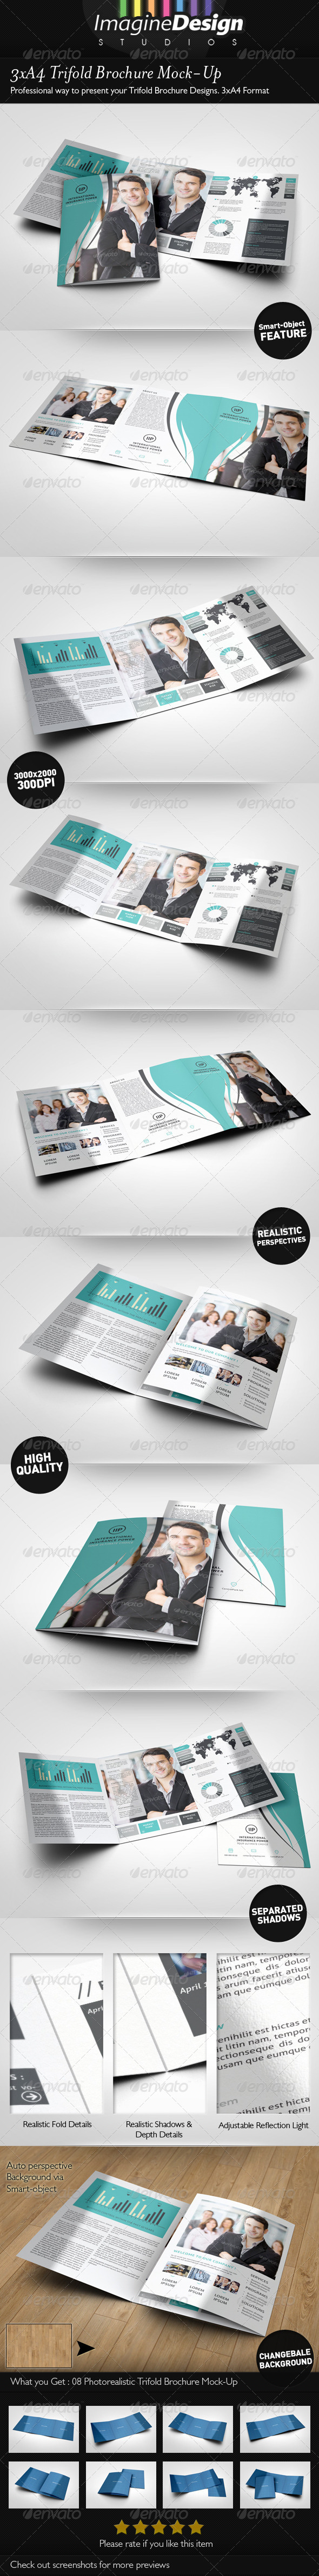 3xA4 Trifold Brochure Mock-Up - Brochures Print